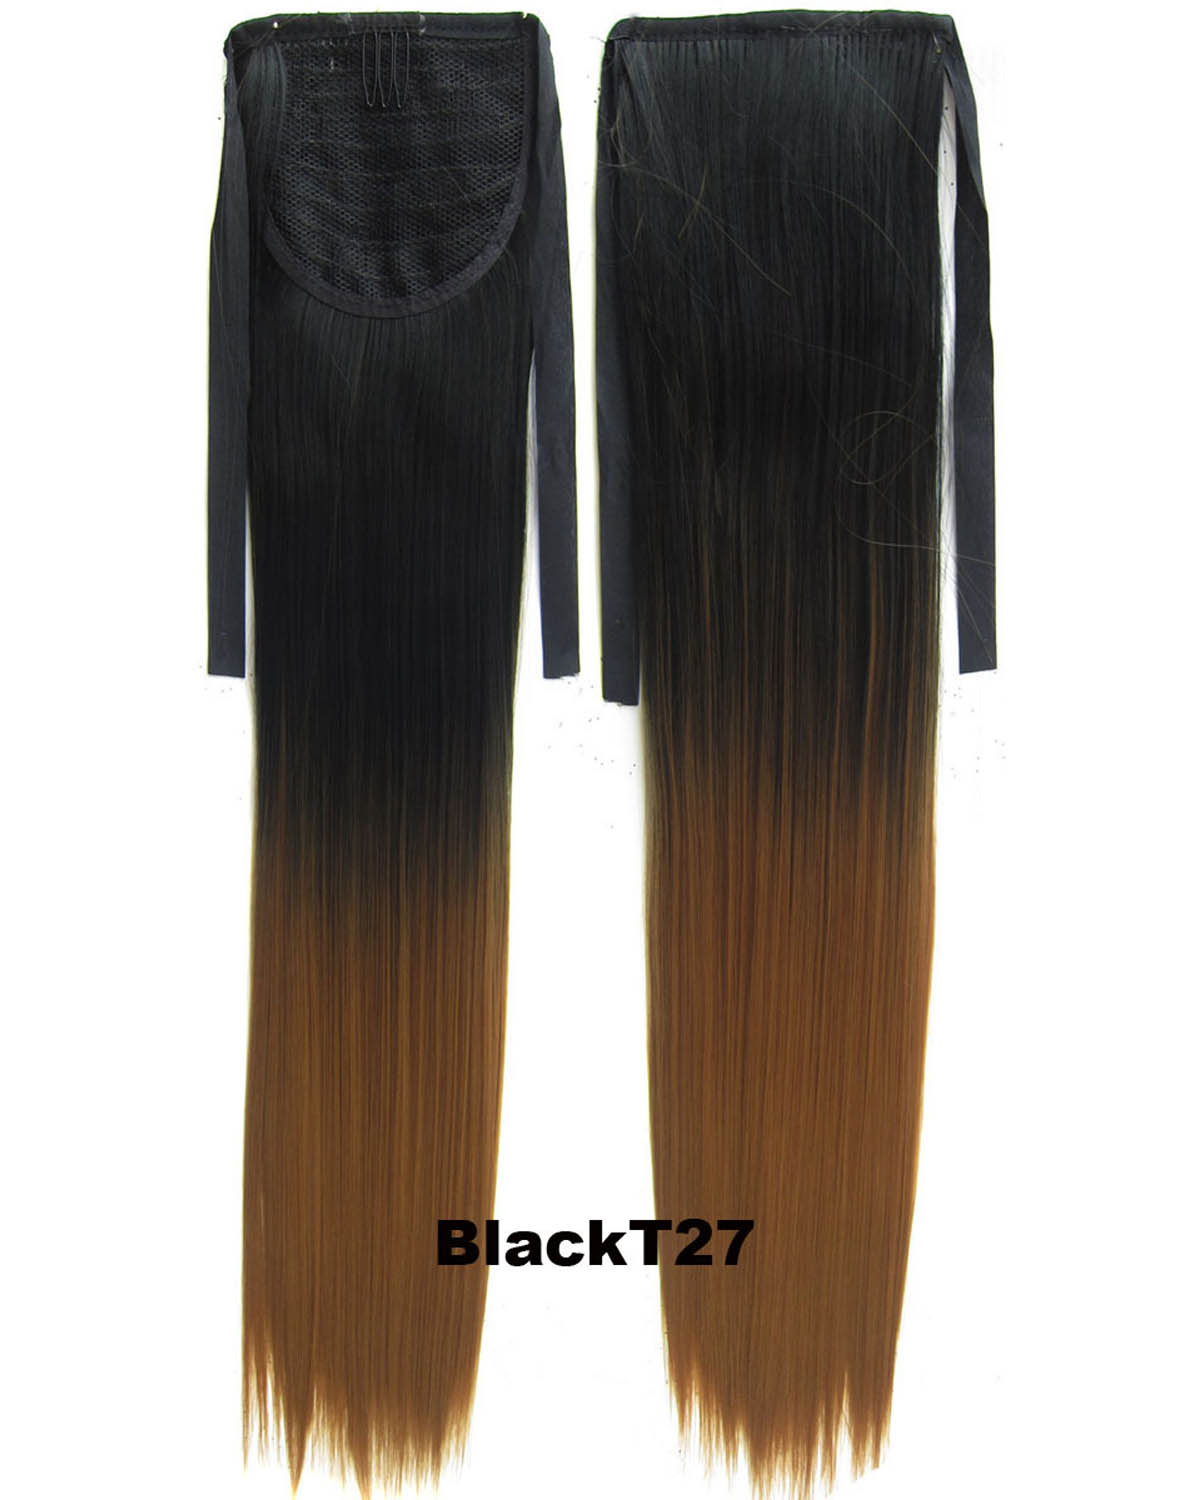 22 Inch Lady Straight and Long Lace/Ribbon Synthetic Hair Ponytail Ombre  BlackT27 Clean